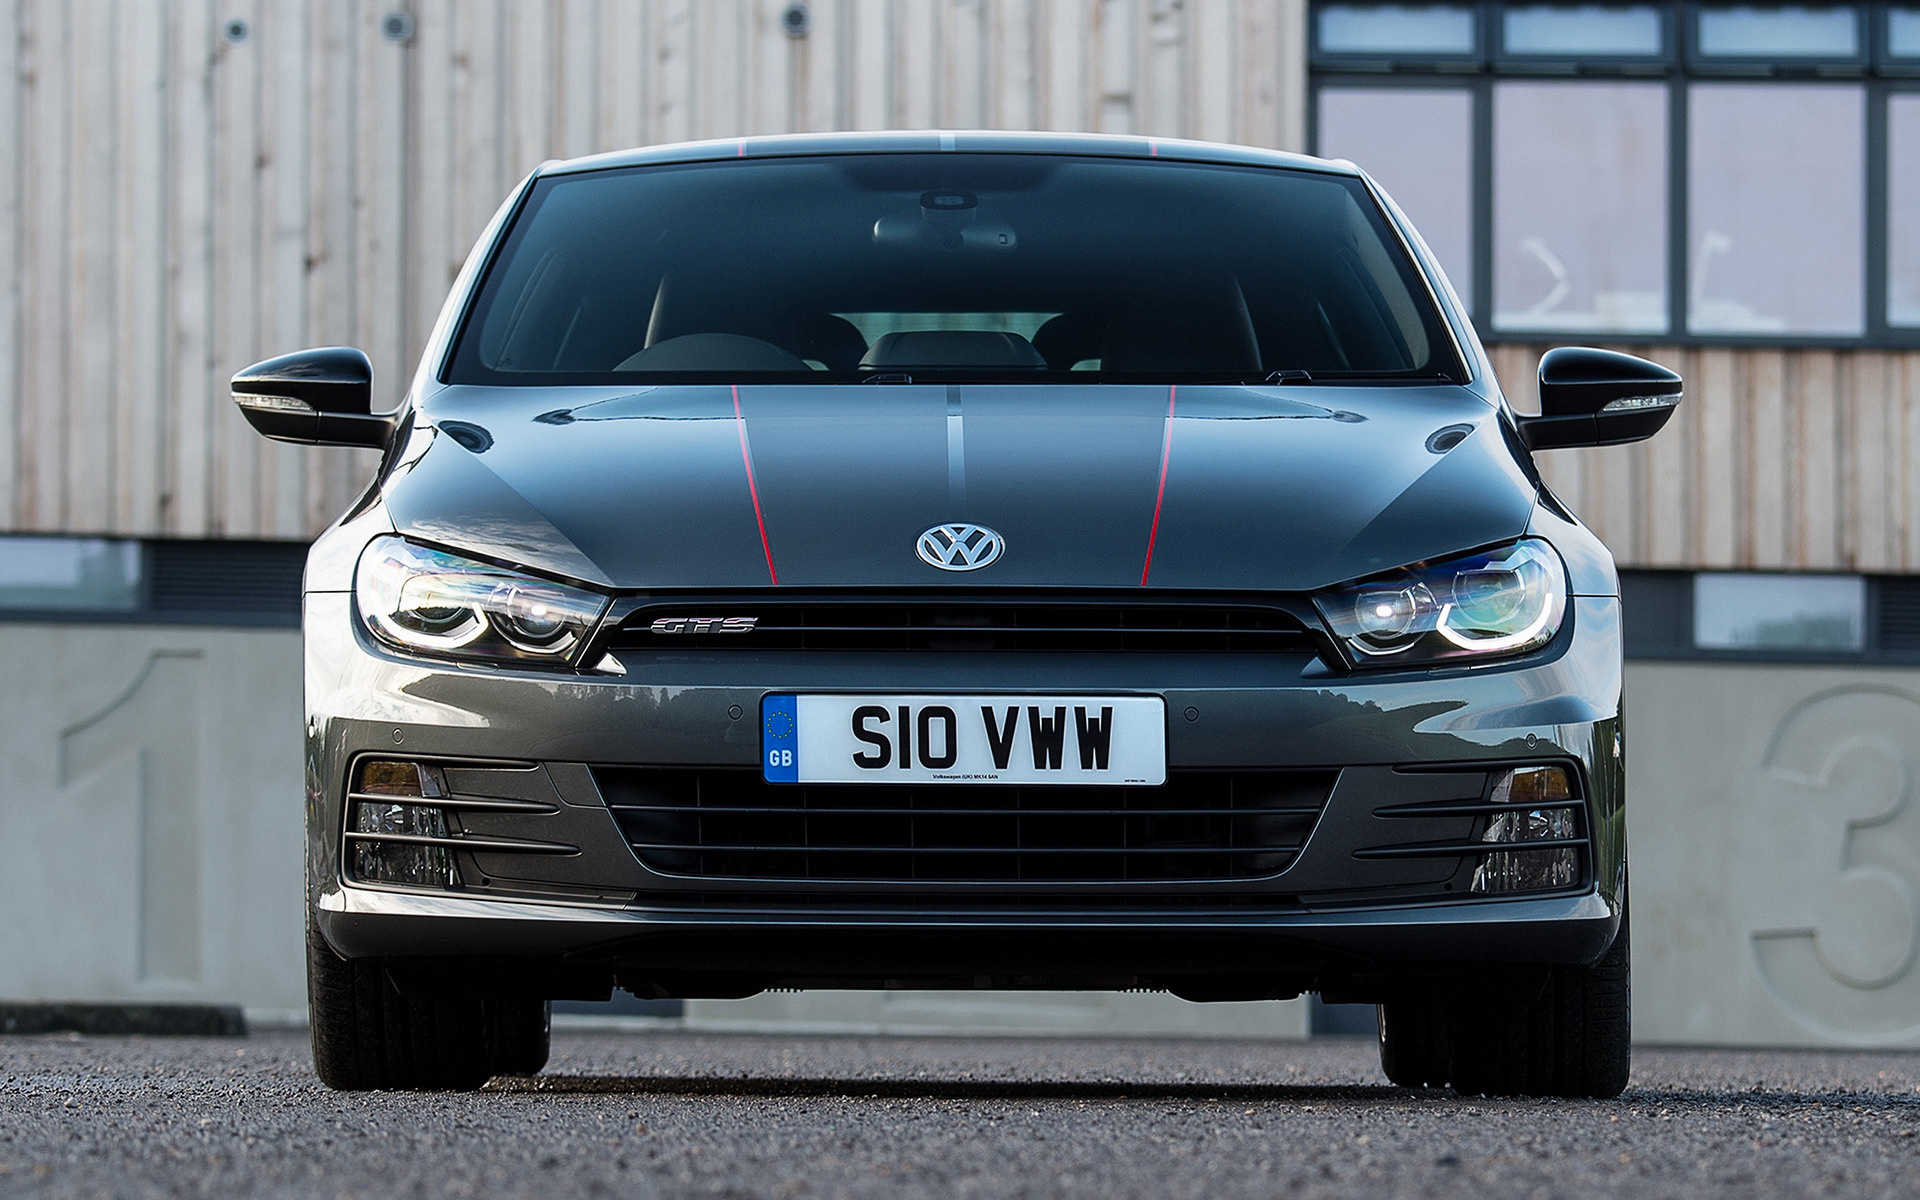 Volkswagen Scirocco GTS (2016) UK Wallpapers and HD Images ...